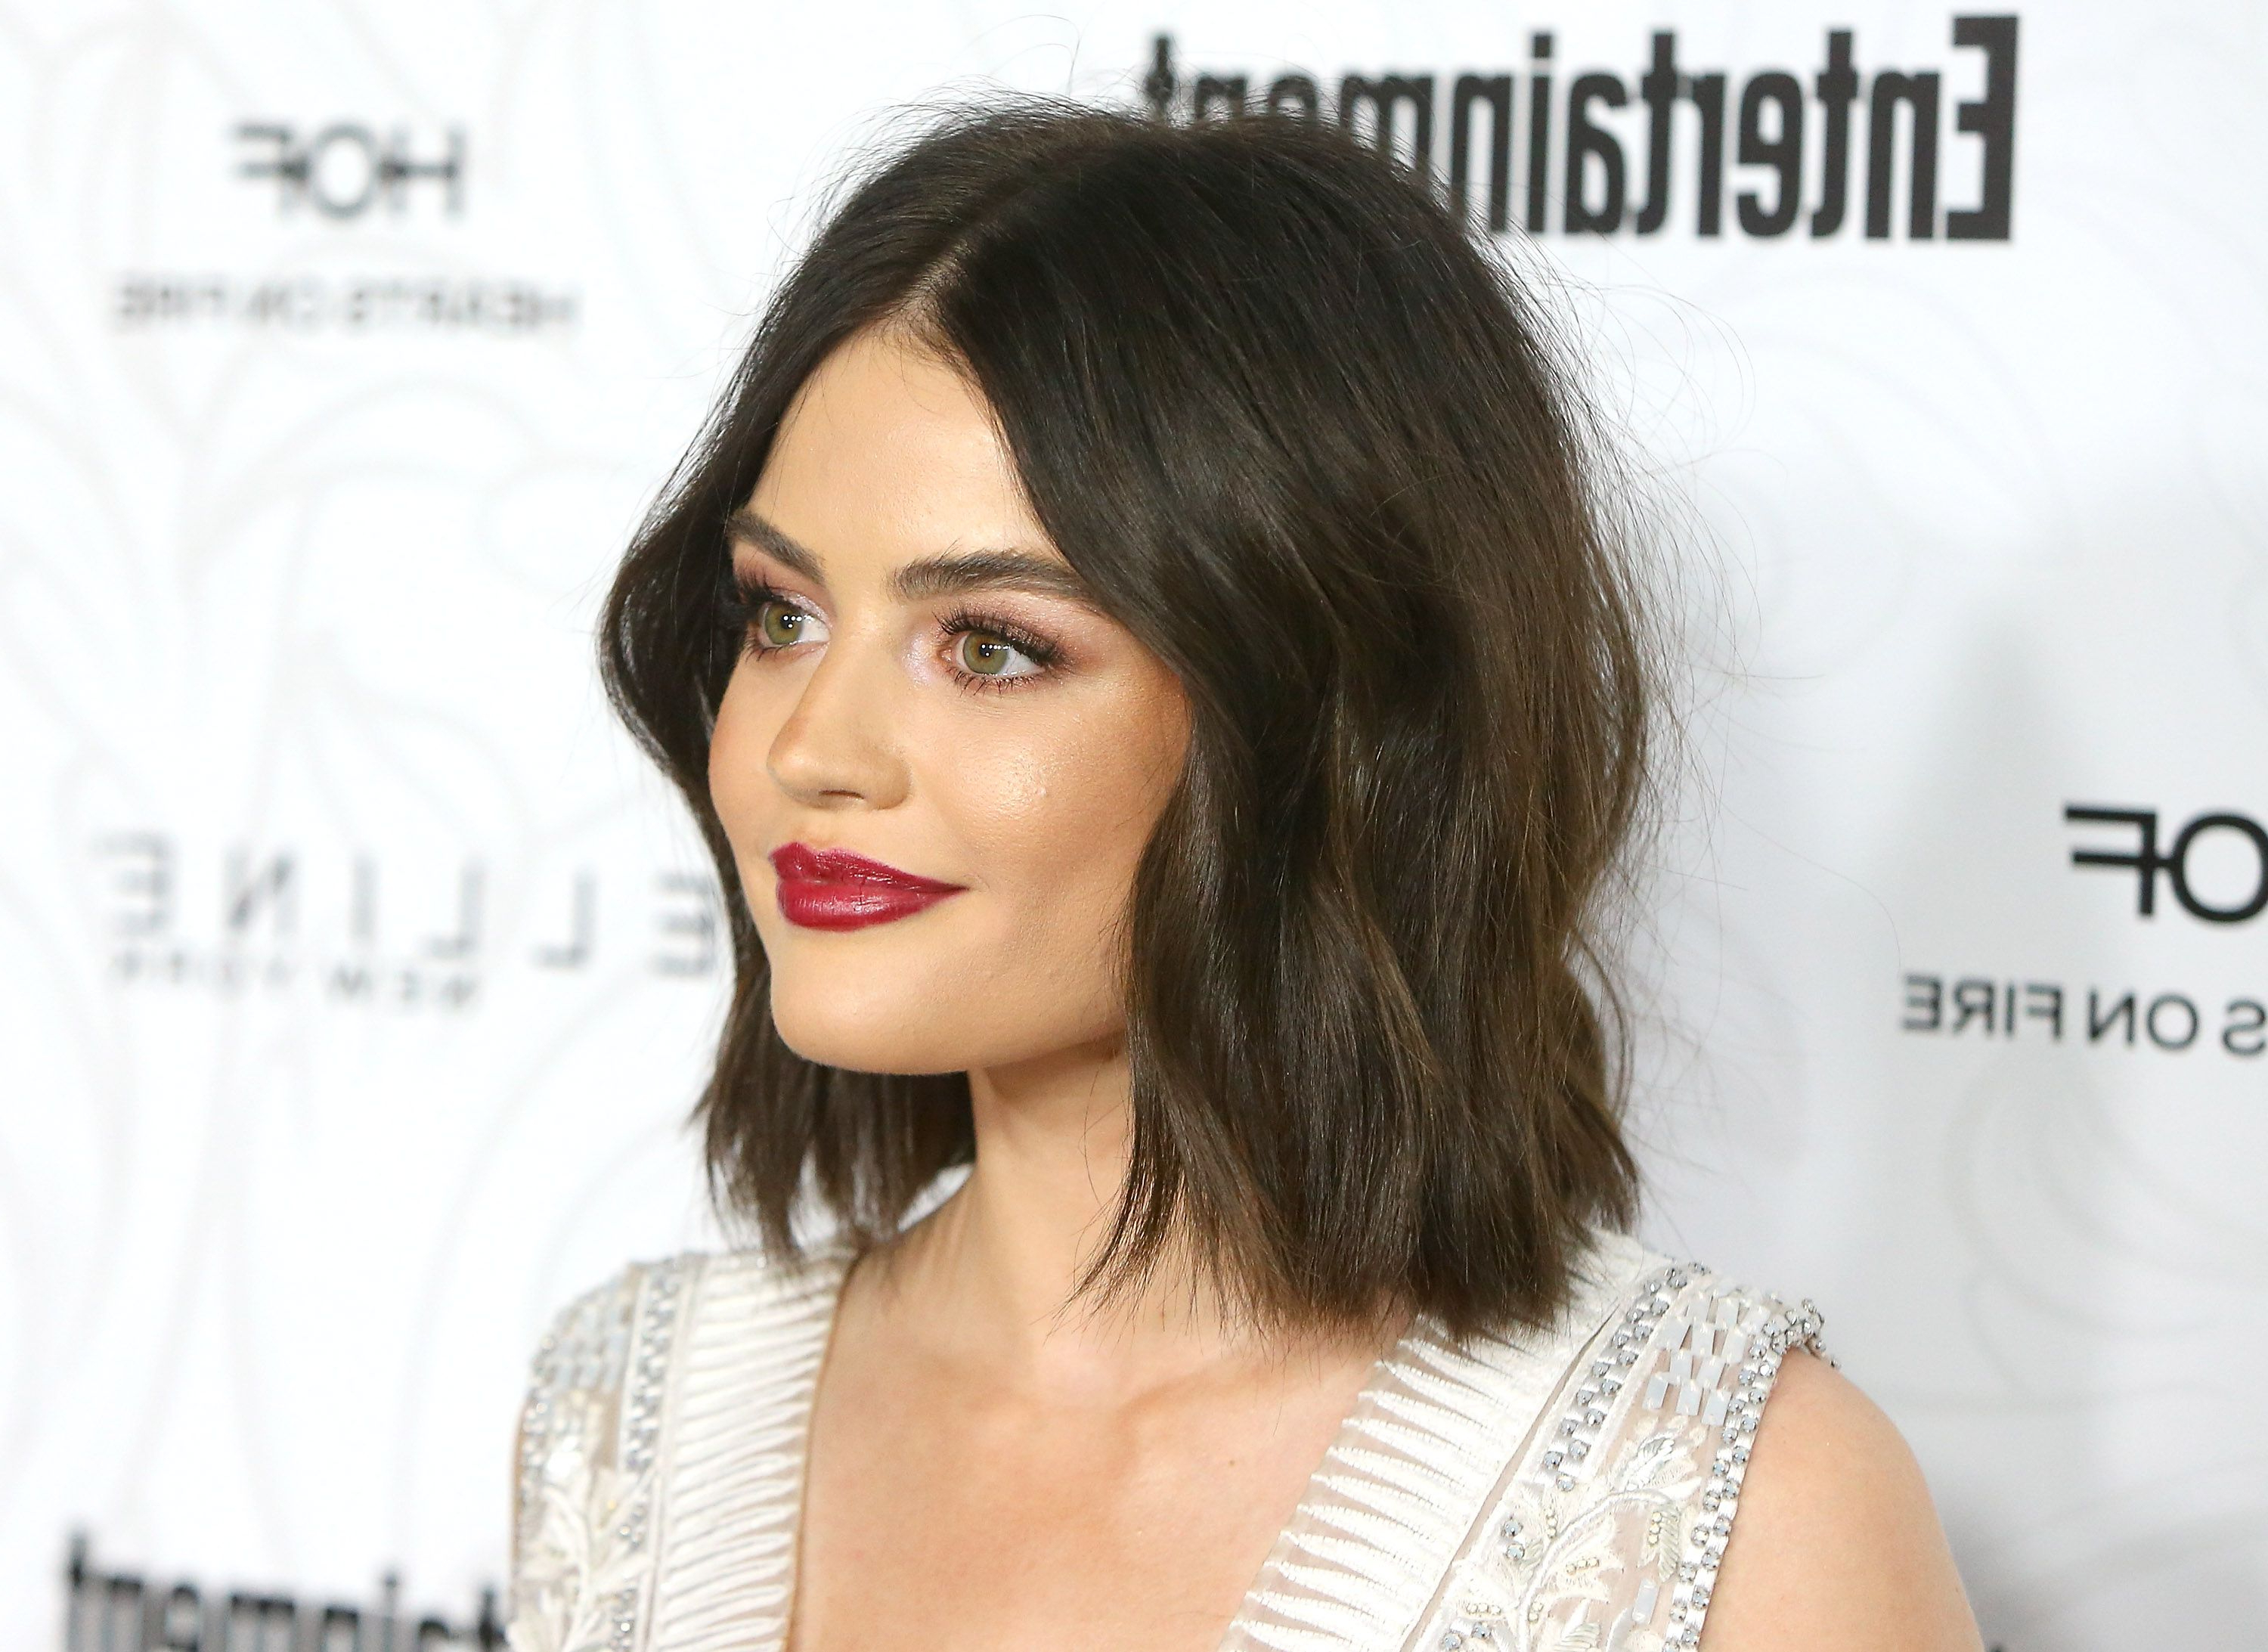 Bob Hairstyles For 2018 – 53 Short Haircut Trends To Try Now Within Choppy Short Hairstyles For Older Women (View 16 of 25)